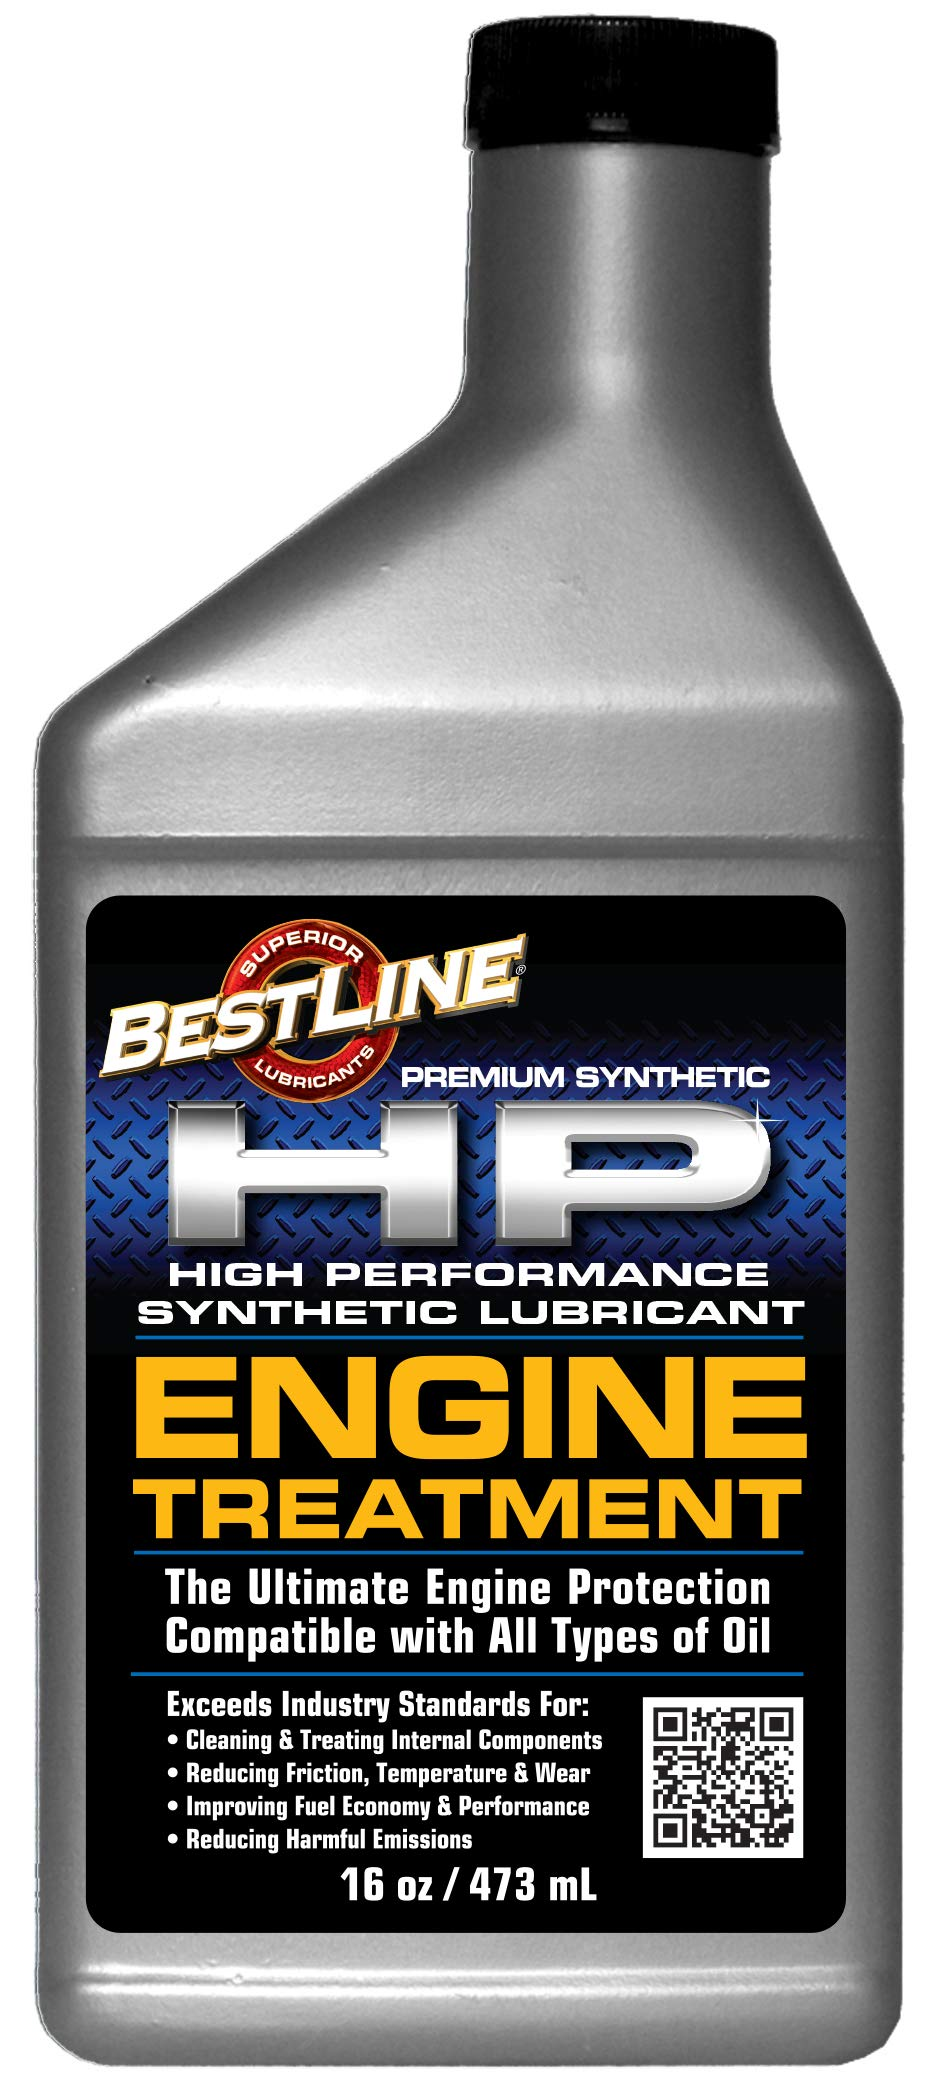 BestLine Superior Lubricants Engine Treatment